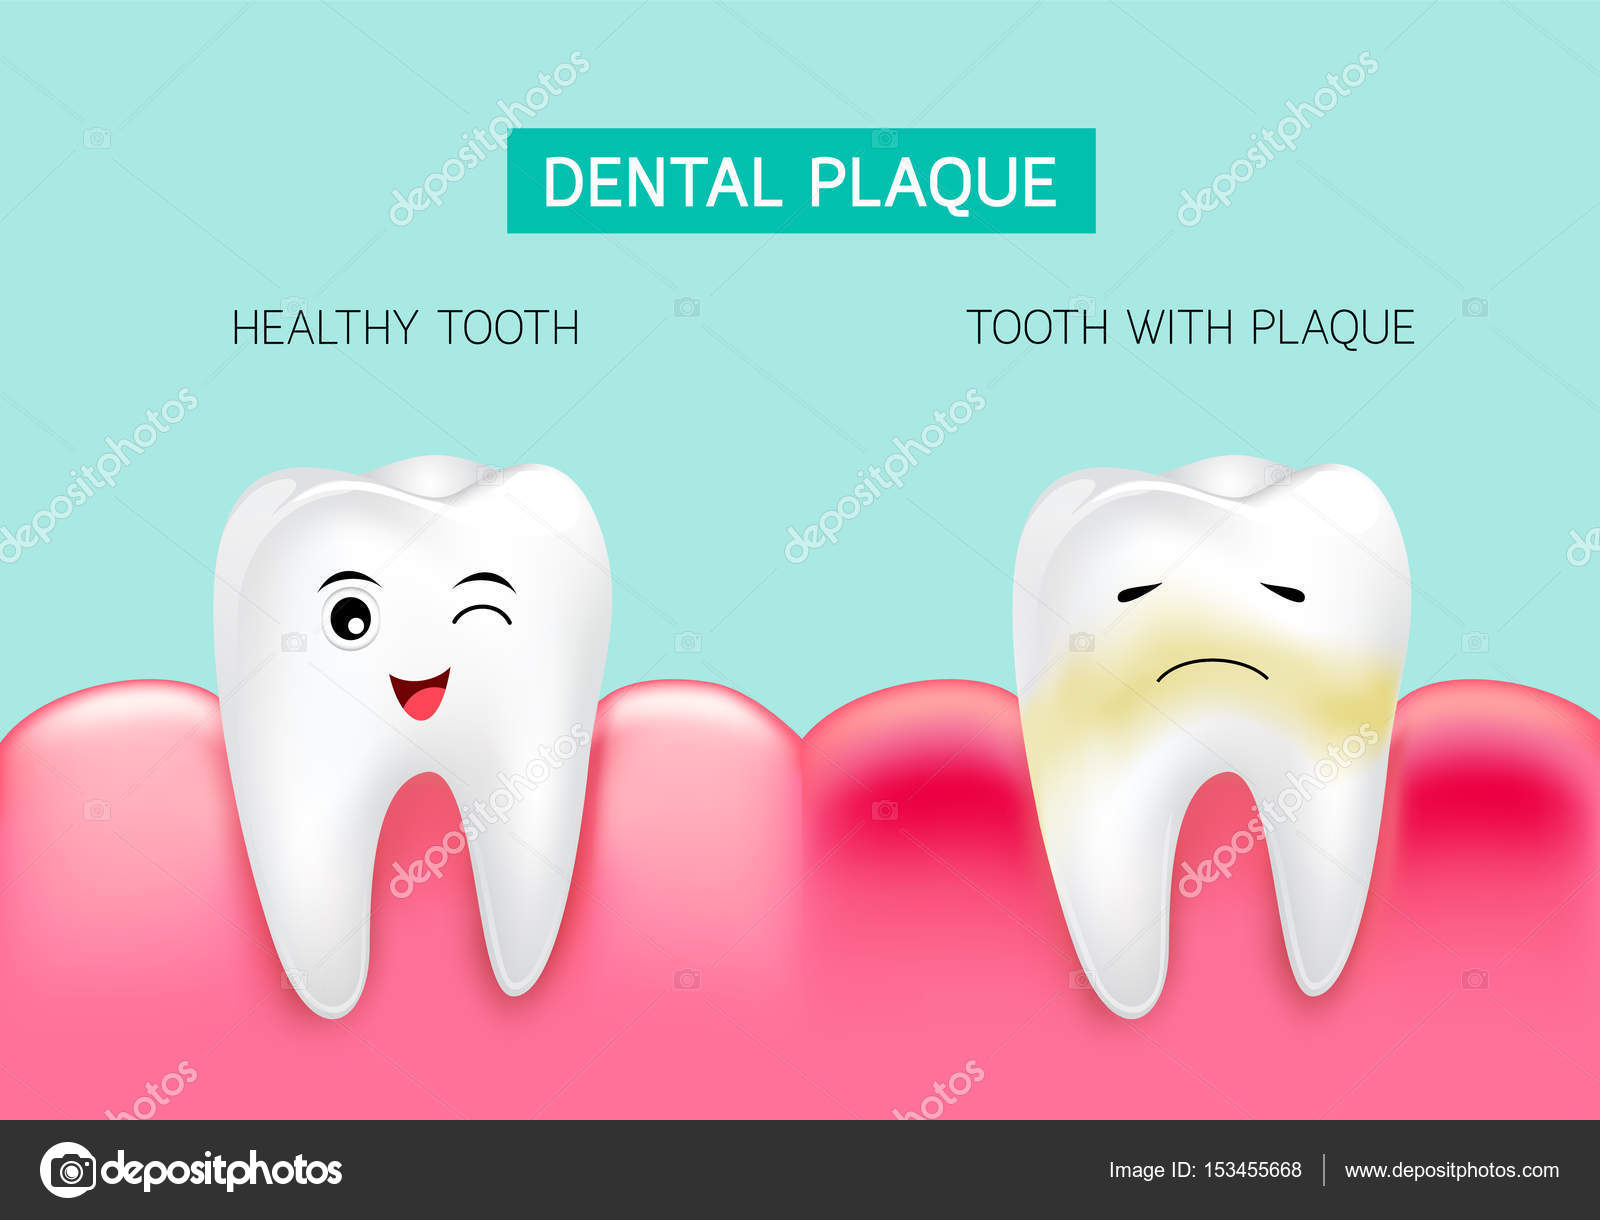 Dental care and the war on plaque